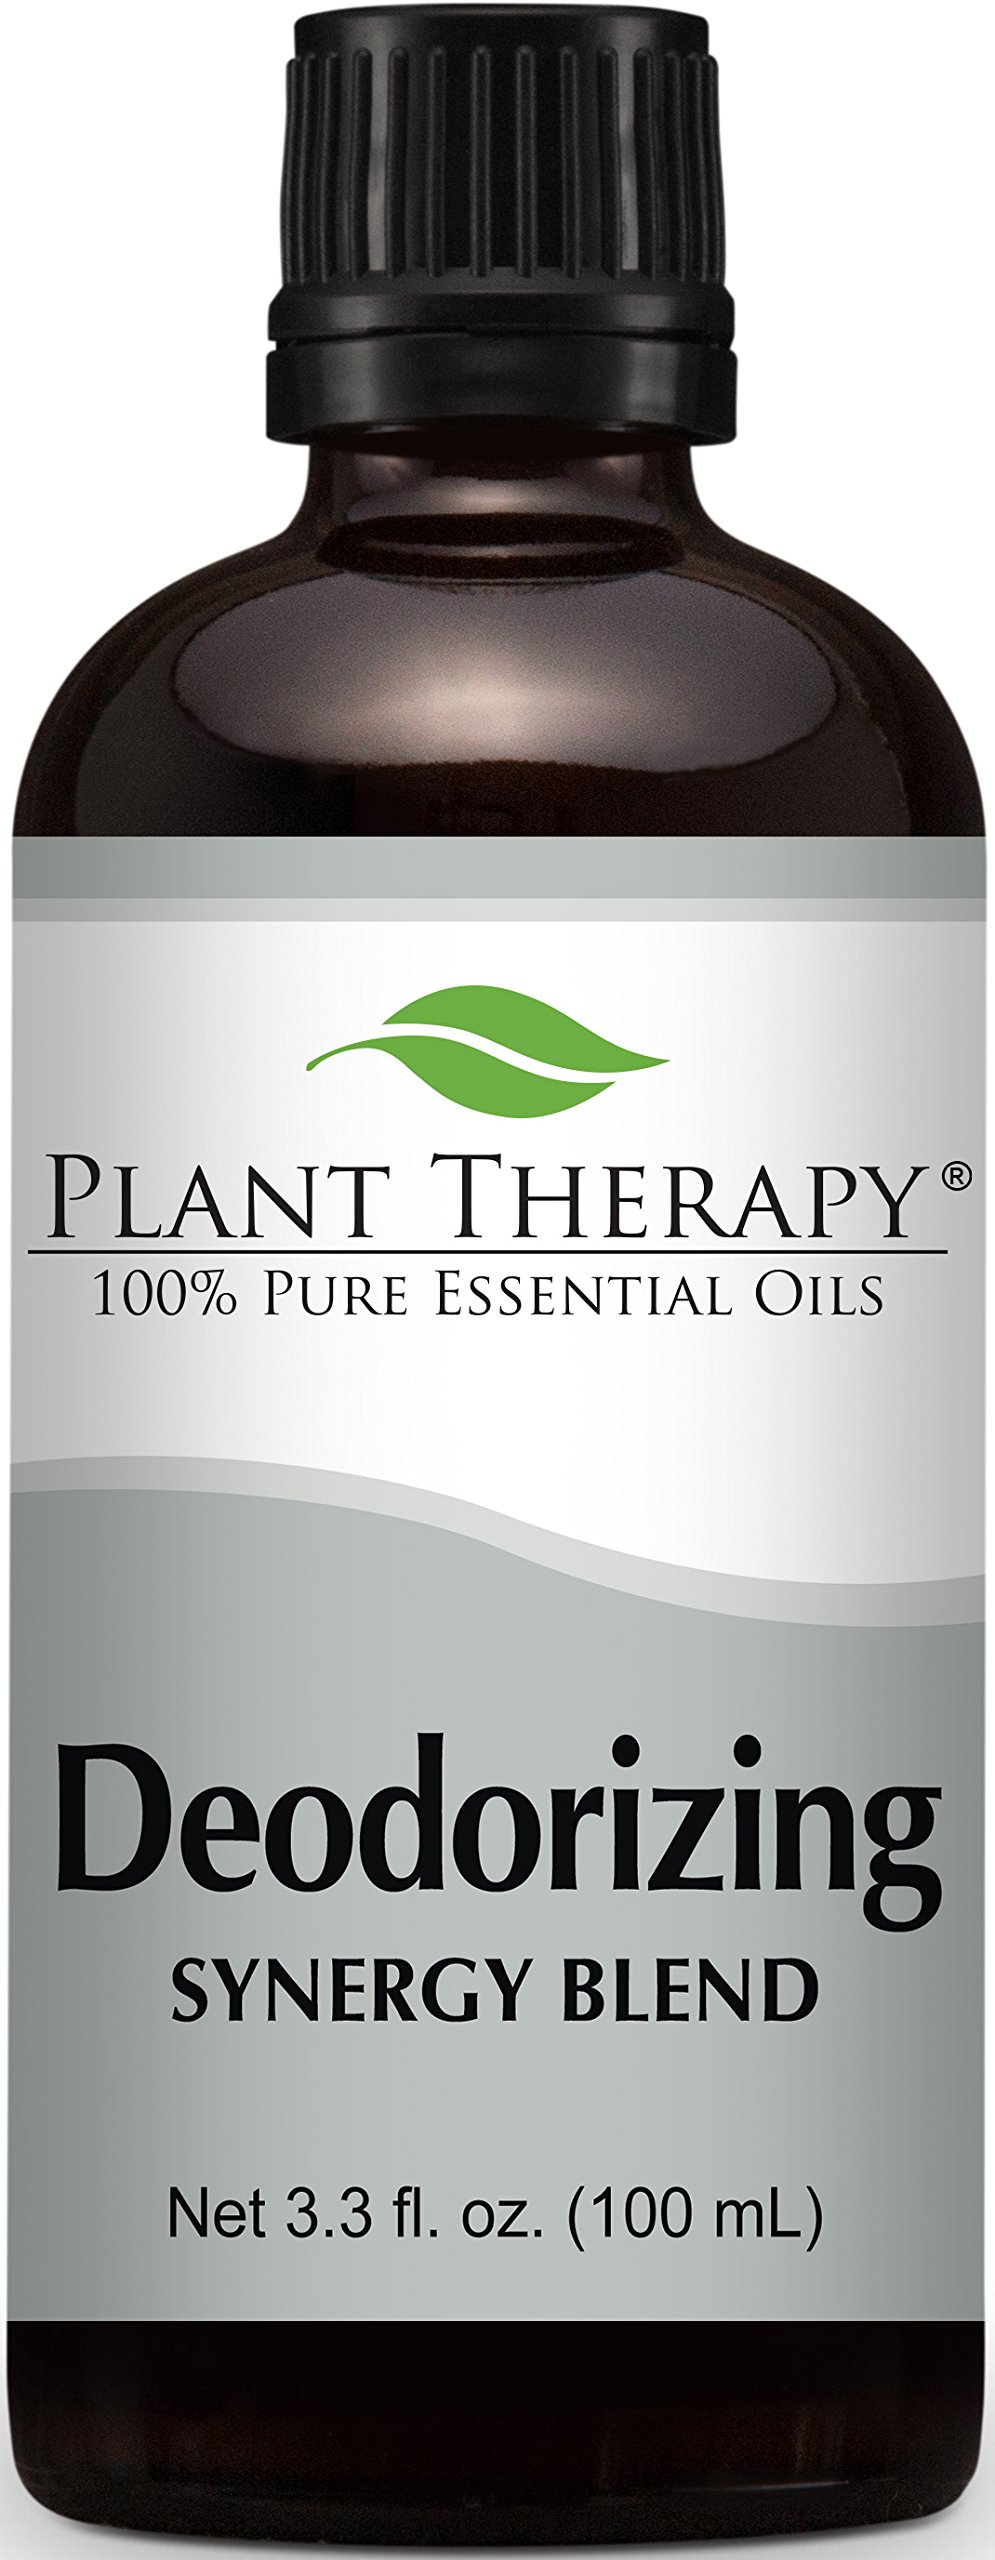 Plant Therapy Deodorizing Synergy Essential Oil Blend 100 mL (3.3 oz) 100% Pure, Undiluted, Therapeutic Grade